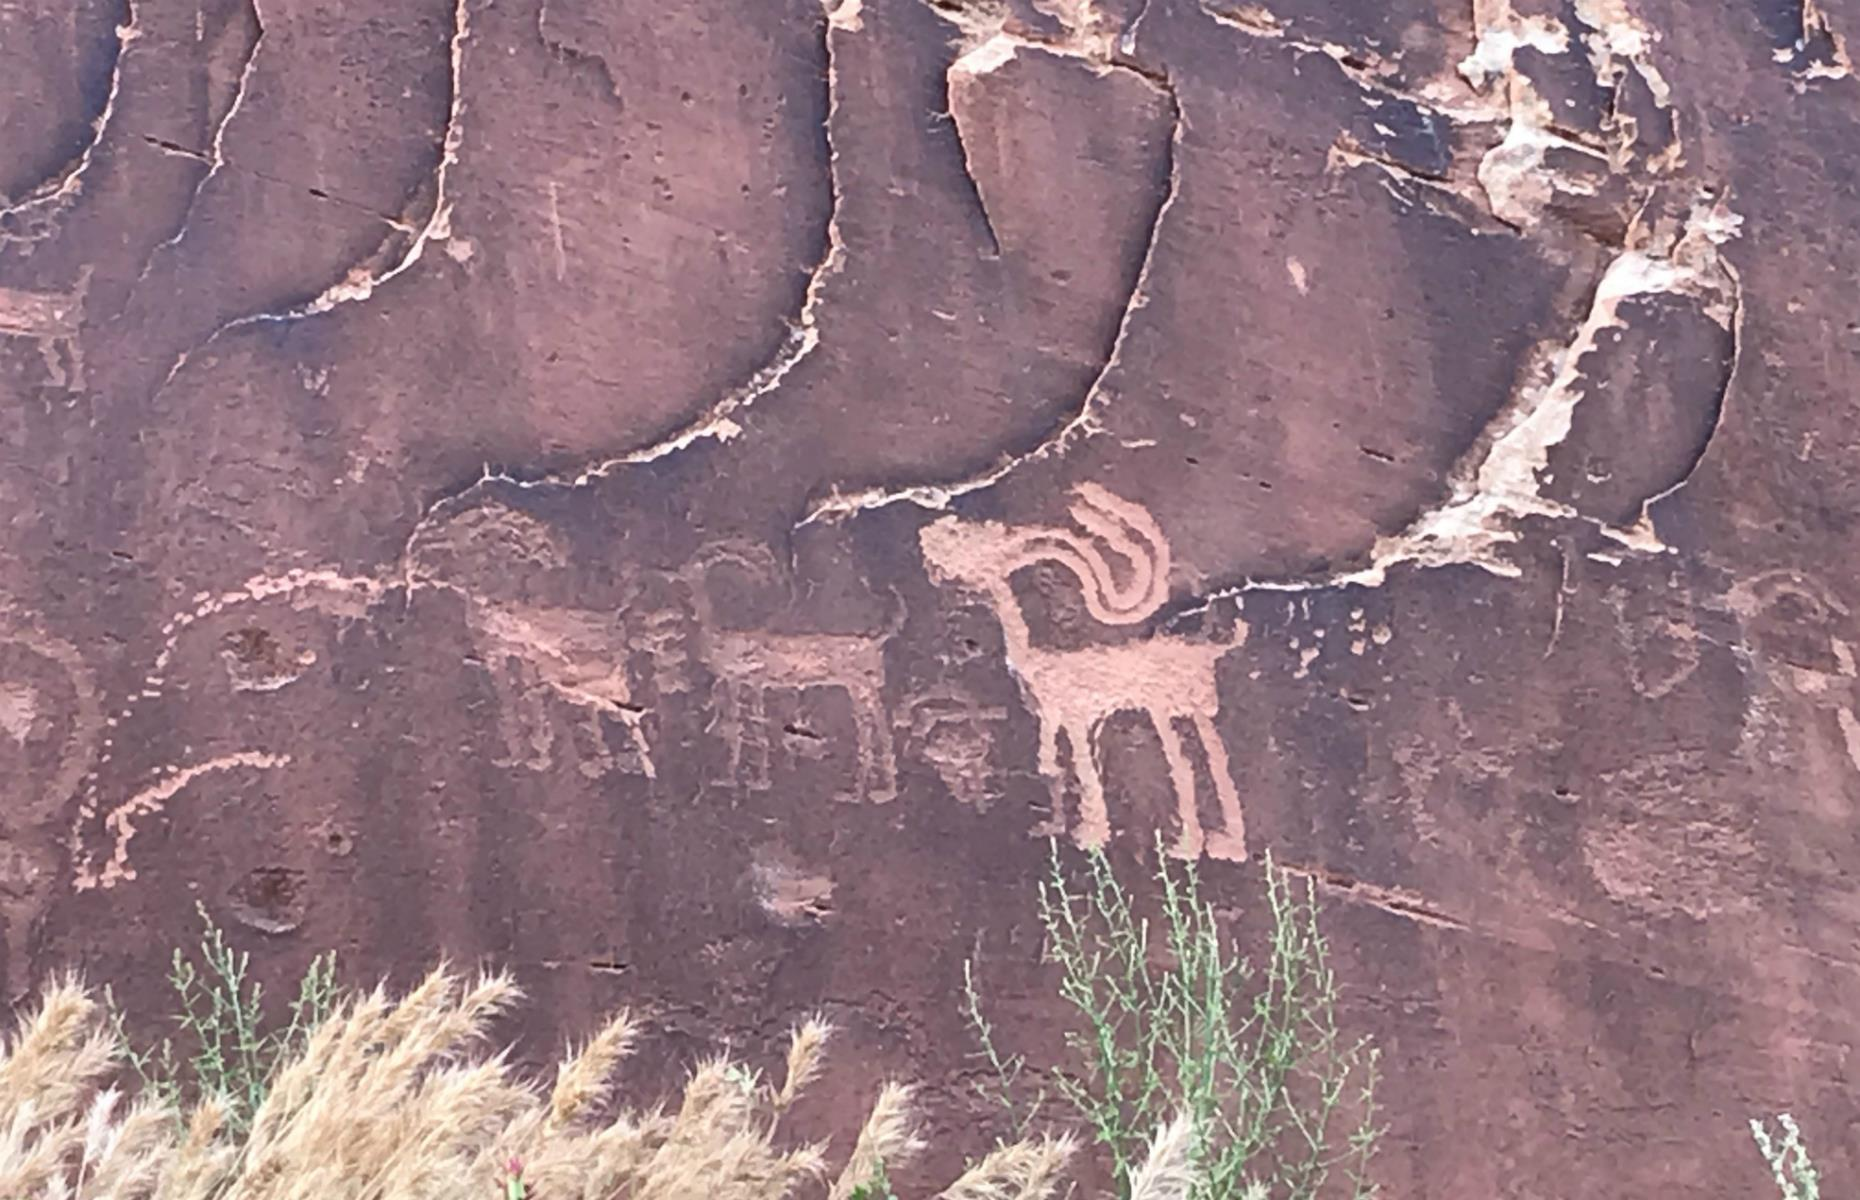 Slide 5 of 27: The early desert dwelling is made up of a series of well-preserved rooms, some arranged over two stories, tucked beneath apricot-hued cliffs. There are hundreds of petroglyphs (carved rock art), including an image of Kokopelli, a fertility deity and trickster god depicted with a flute and feathered headdress.